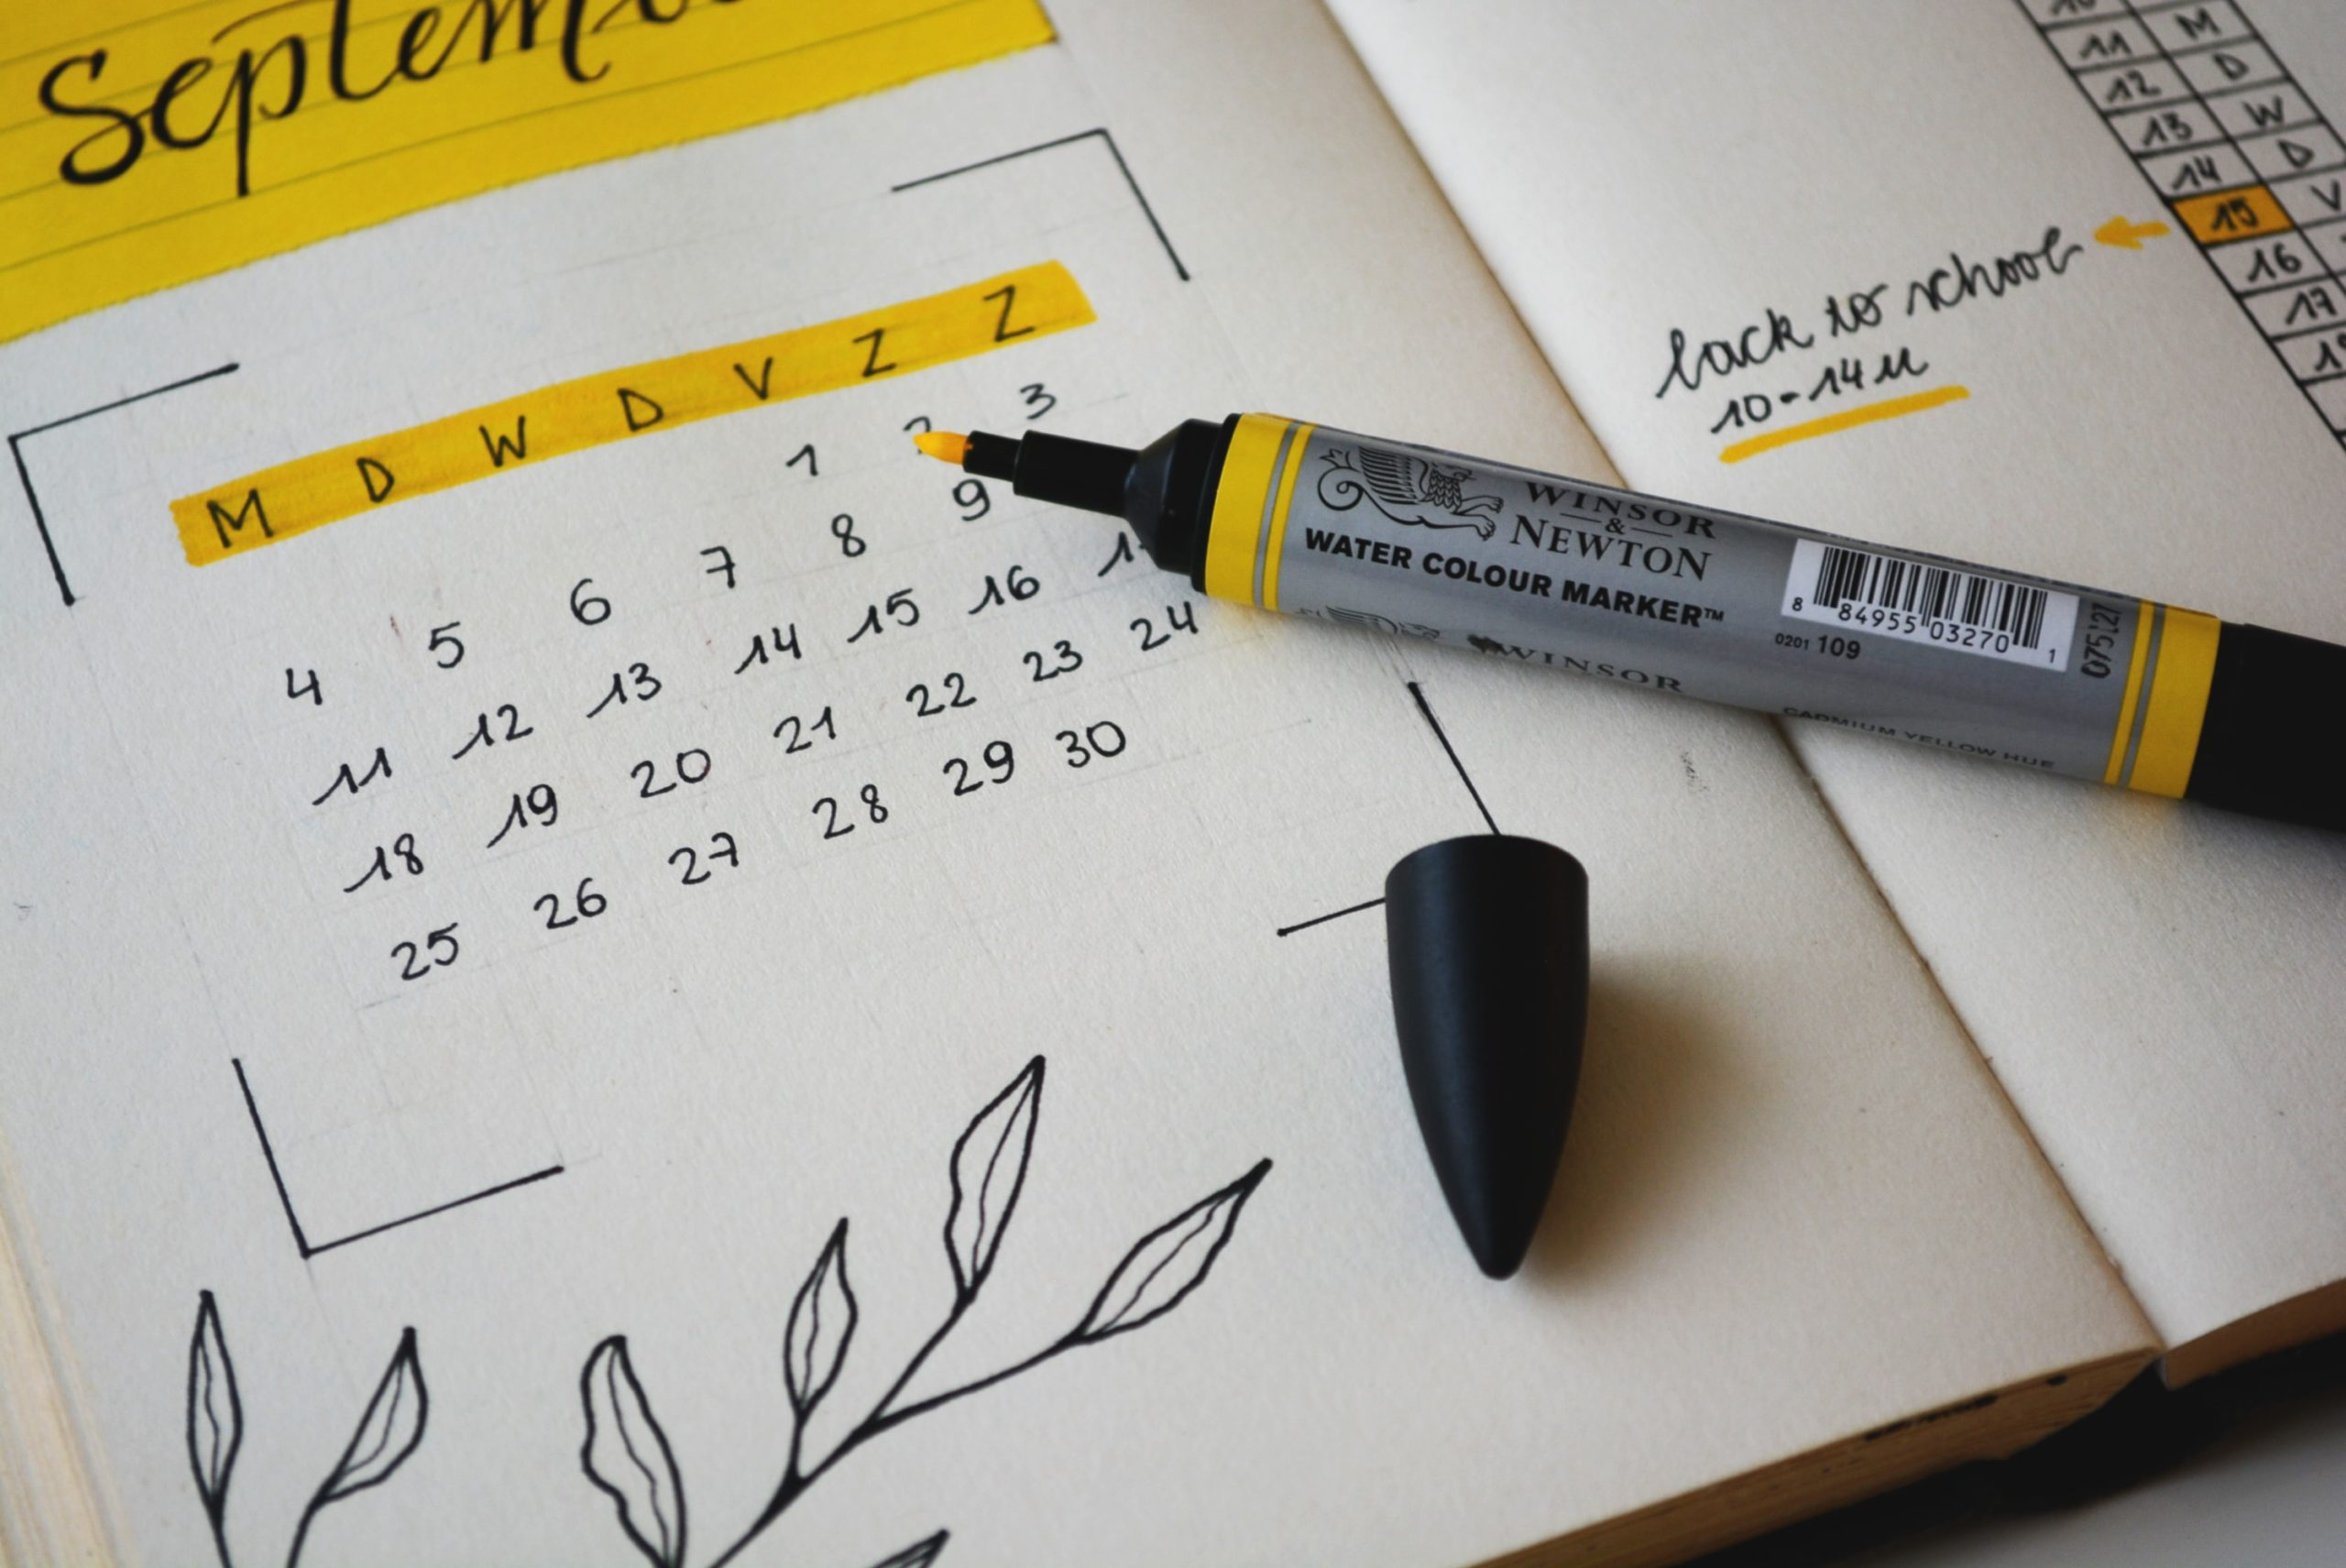 hand-drawn calendar with highlighter and drawing